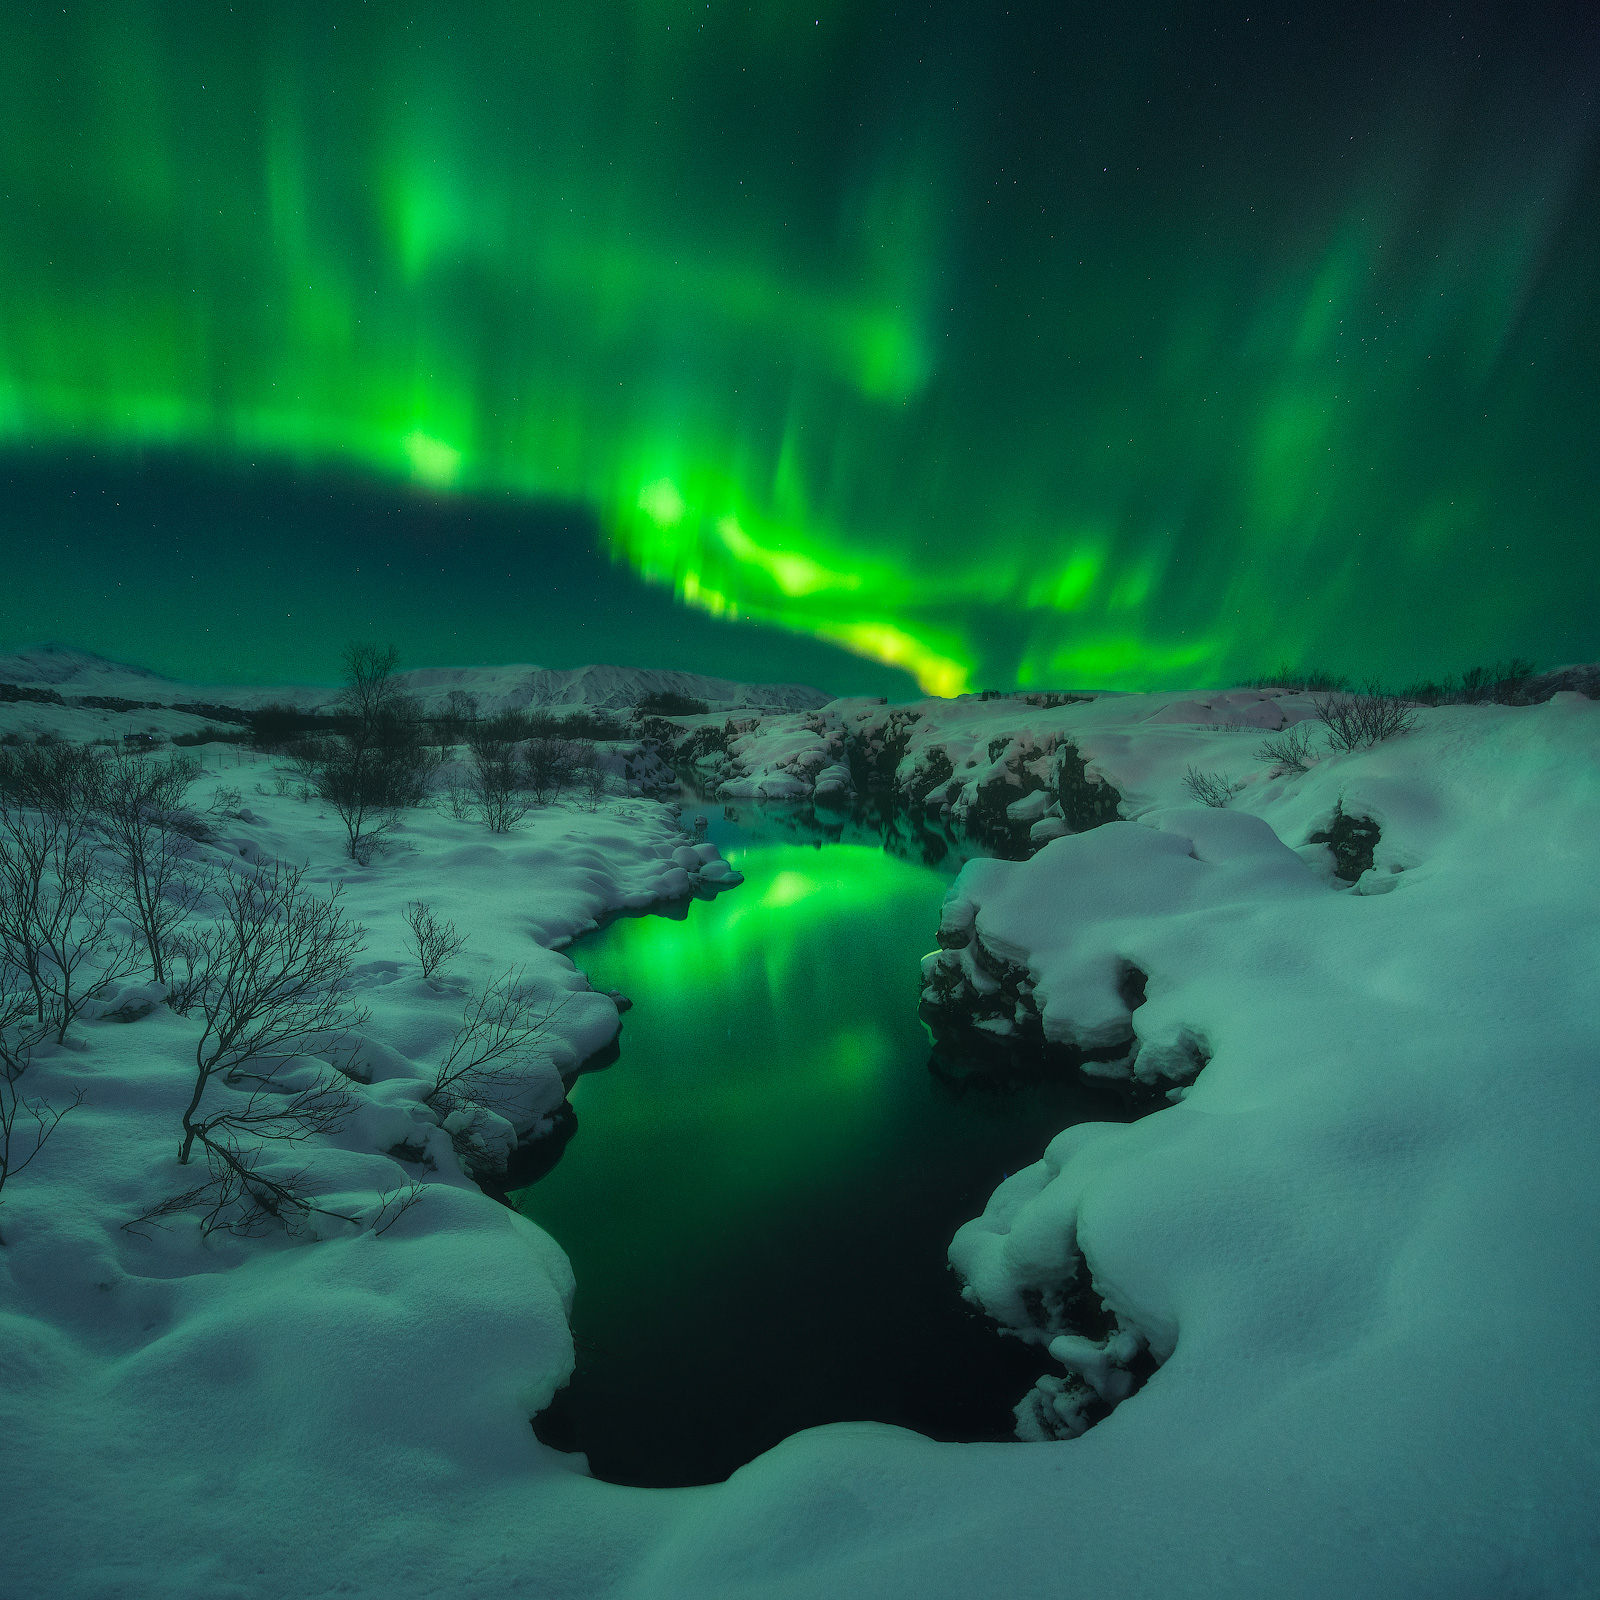 The Northern Lights swirling around in the sky above Þingvellir National Park.